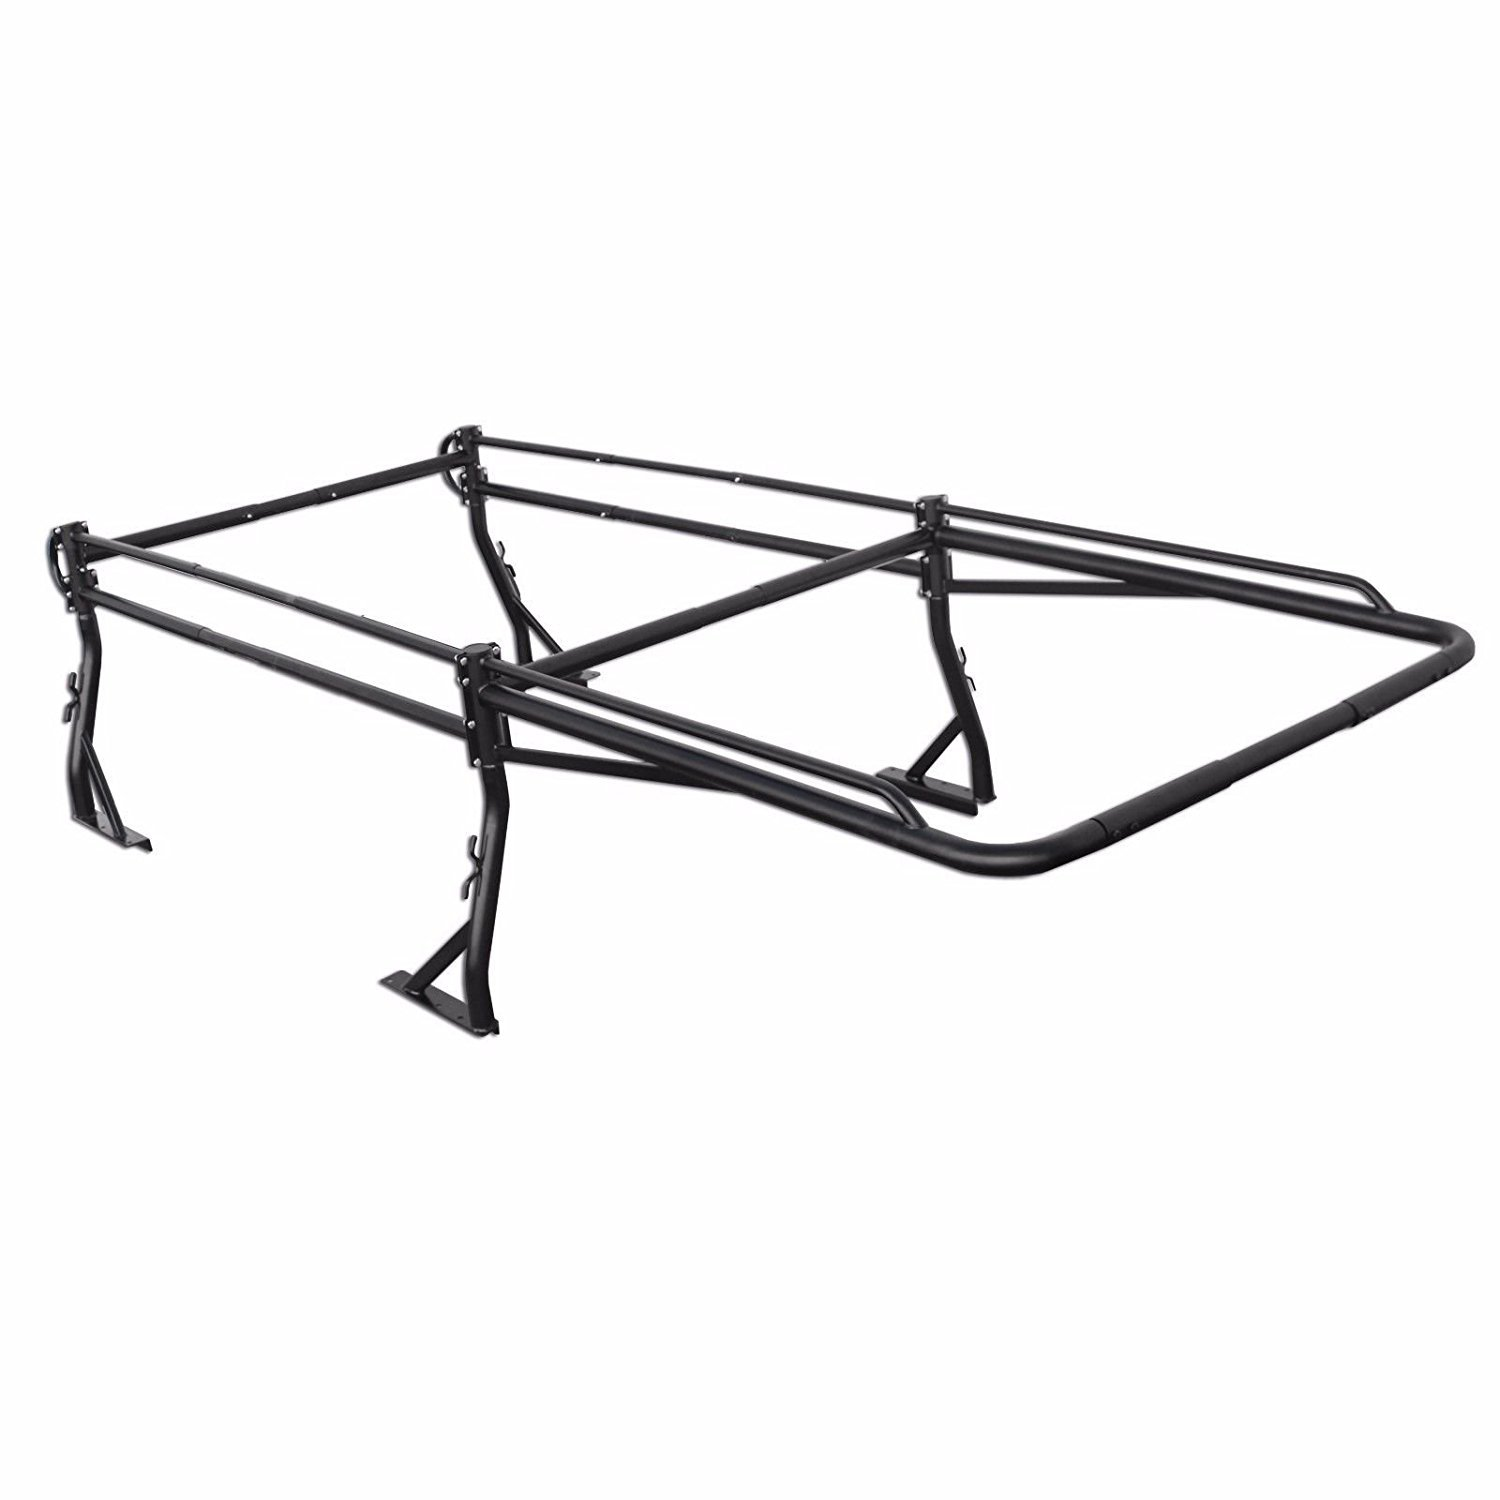 AA-Racks P39-RC Removeable Middle Crossbar White